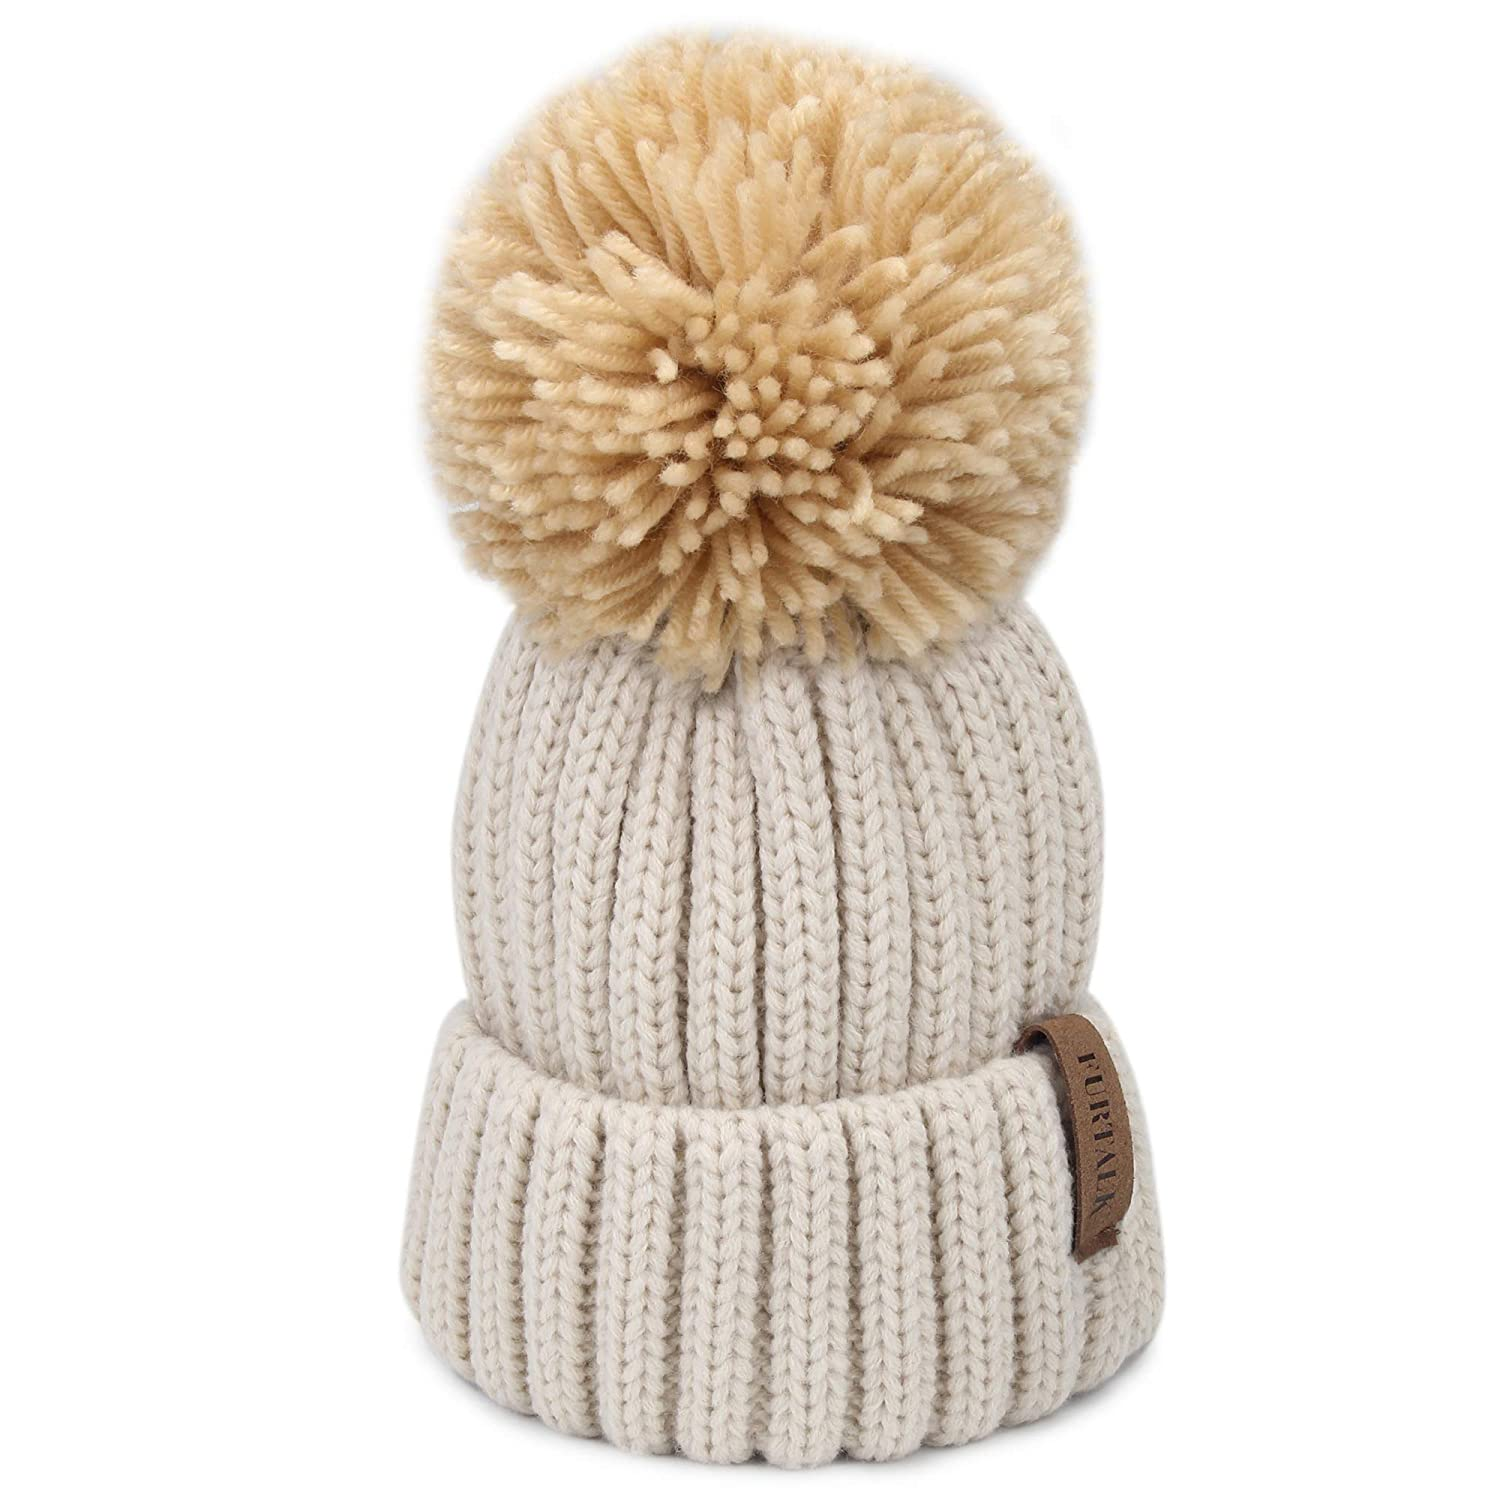 157d9b60b60 This winter hat is made of high quality stretchy acrylic to fit any size.  Real Fur Pom Pom Hat has a detachable 5.9 inch (16 cm) diameter Real  Raccoon fur ...